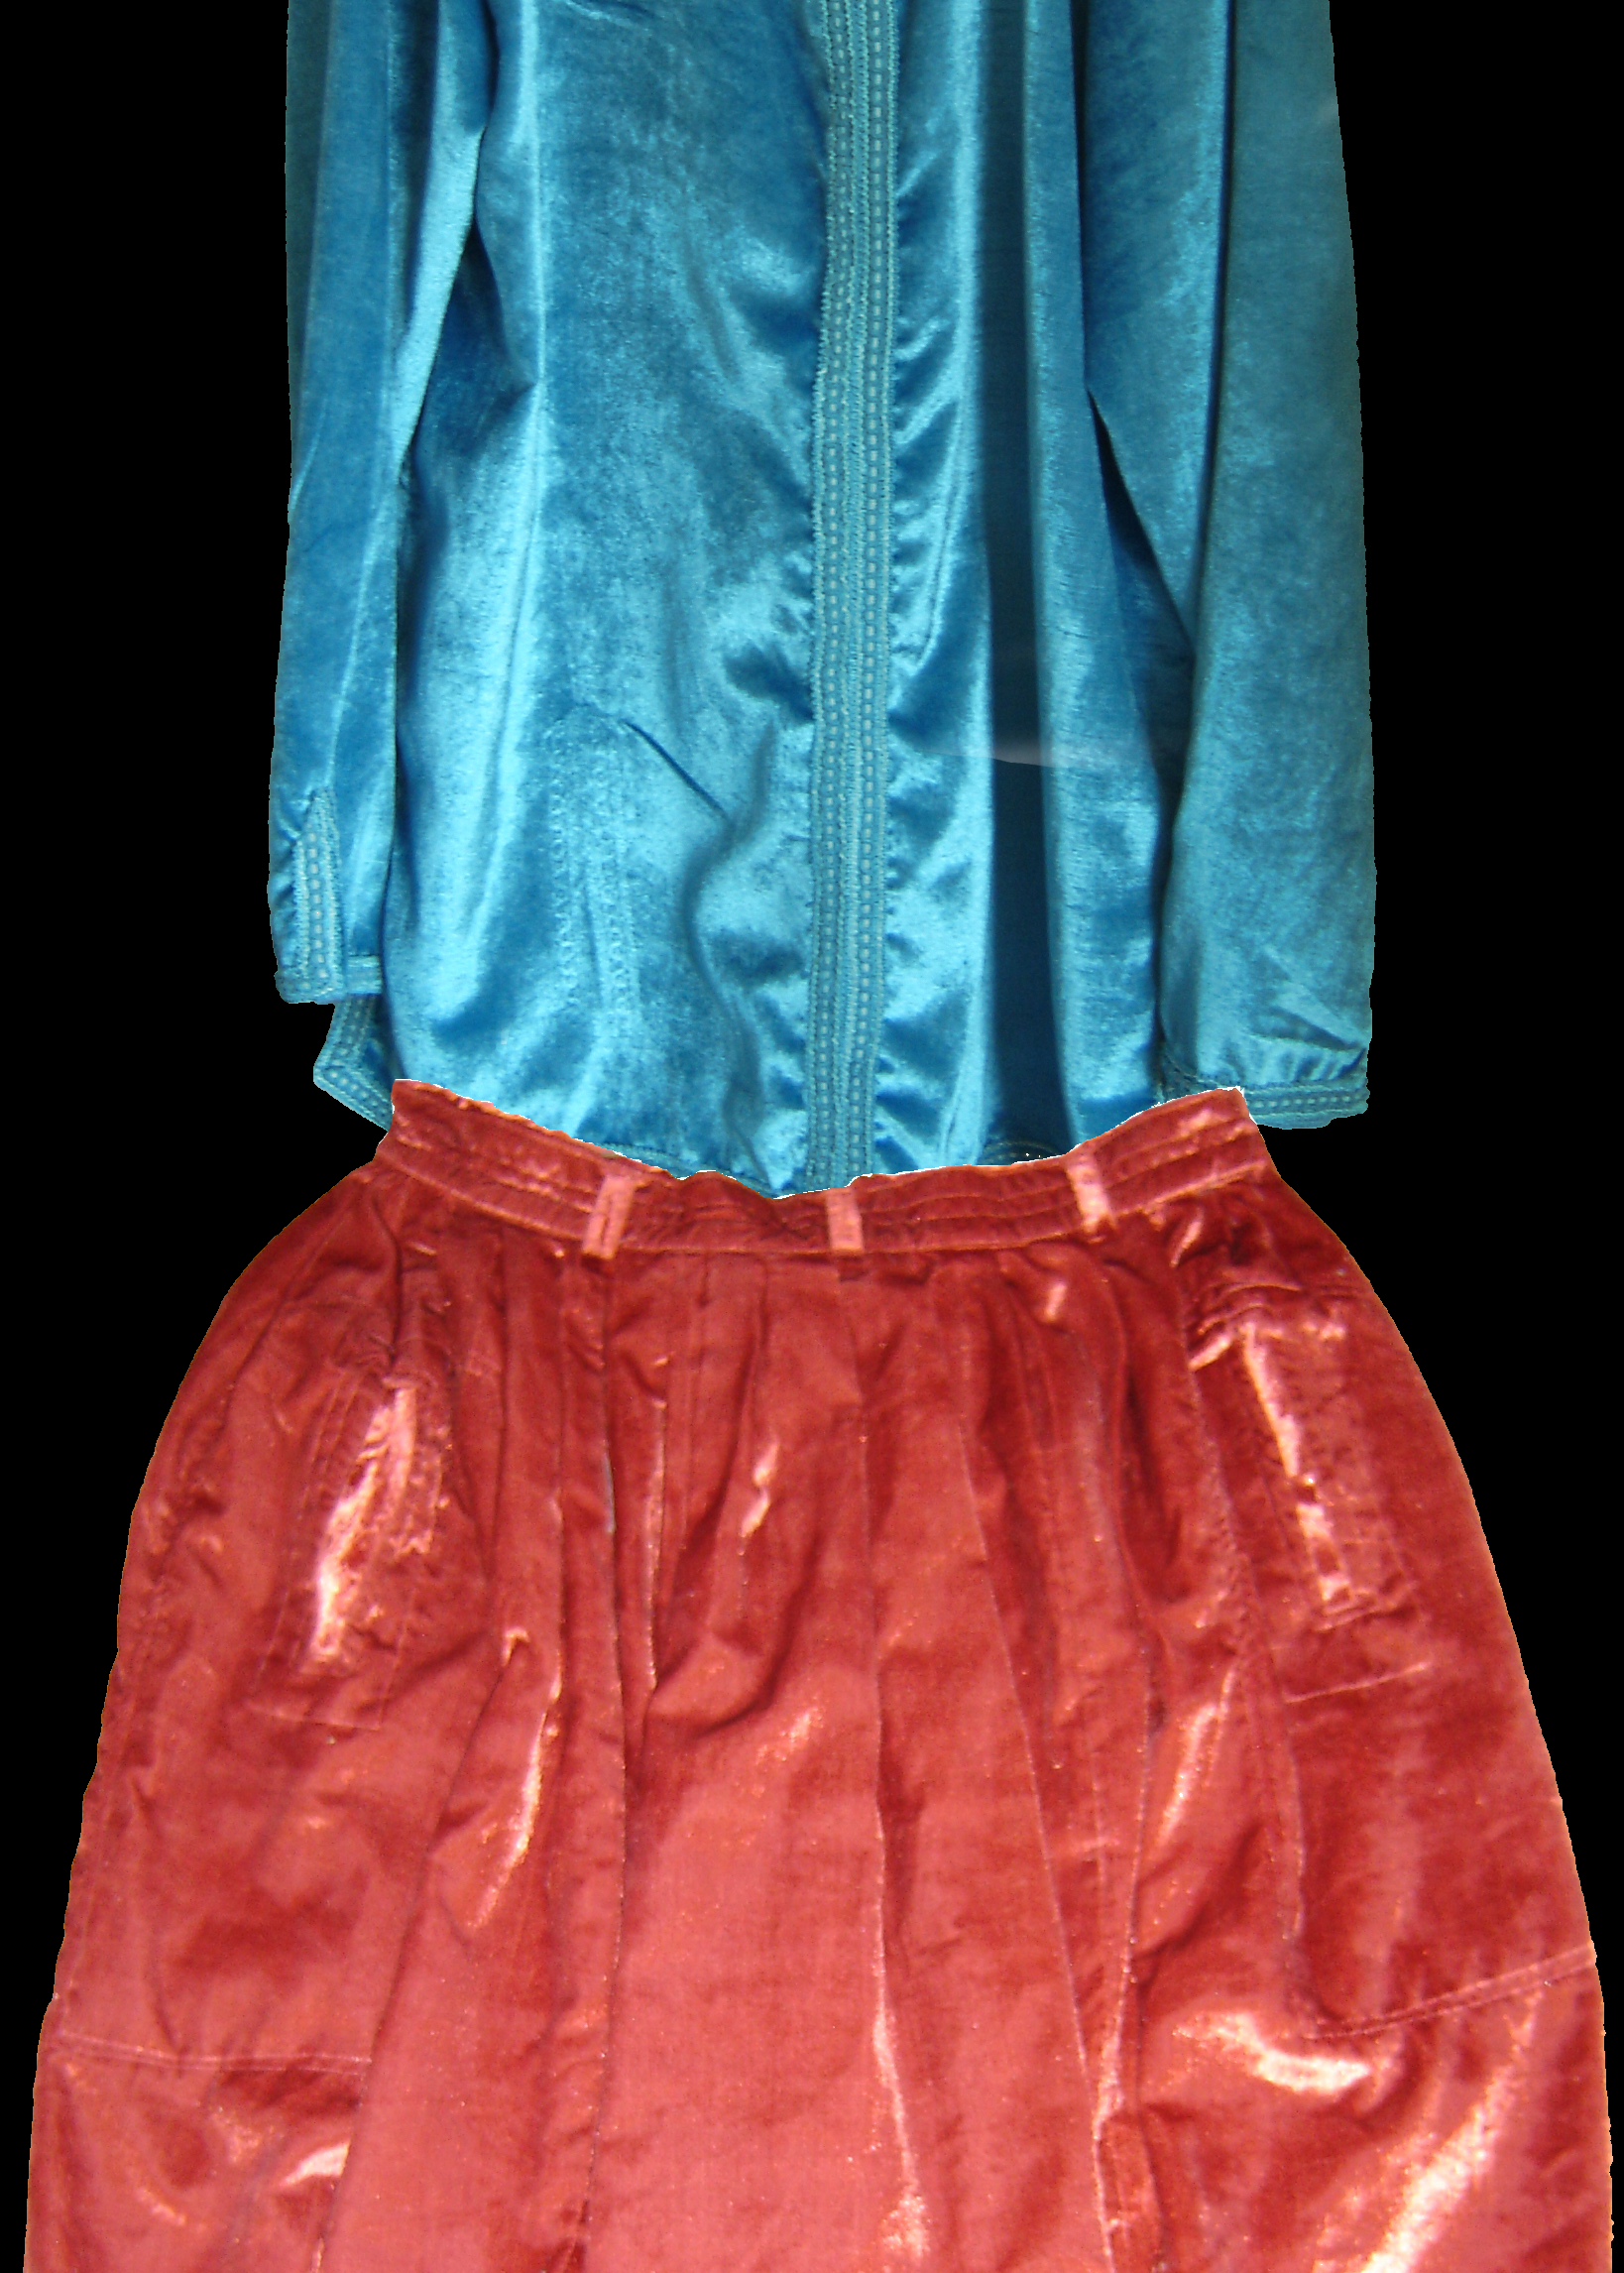 Orange velvet Moroccan qandrissi contrasted with ice-blue velvet Moroccan shirt